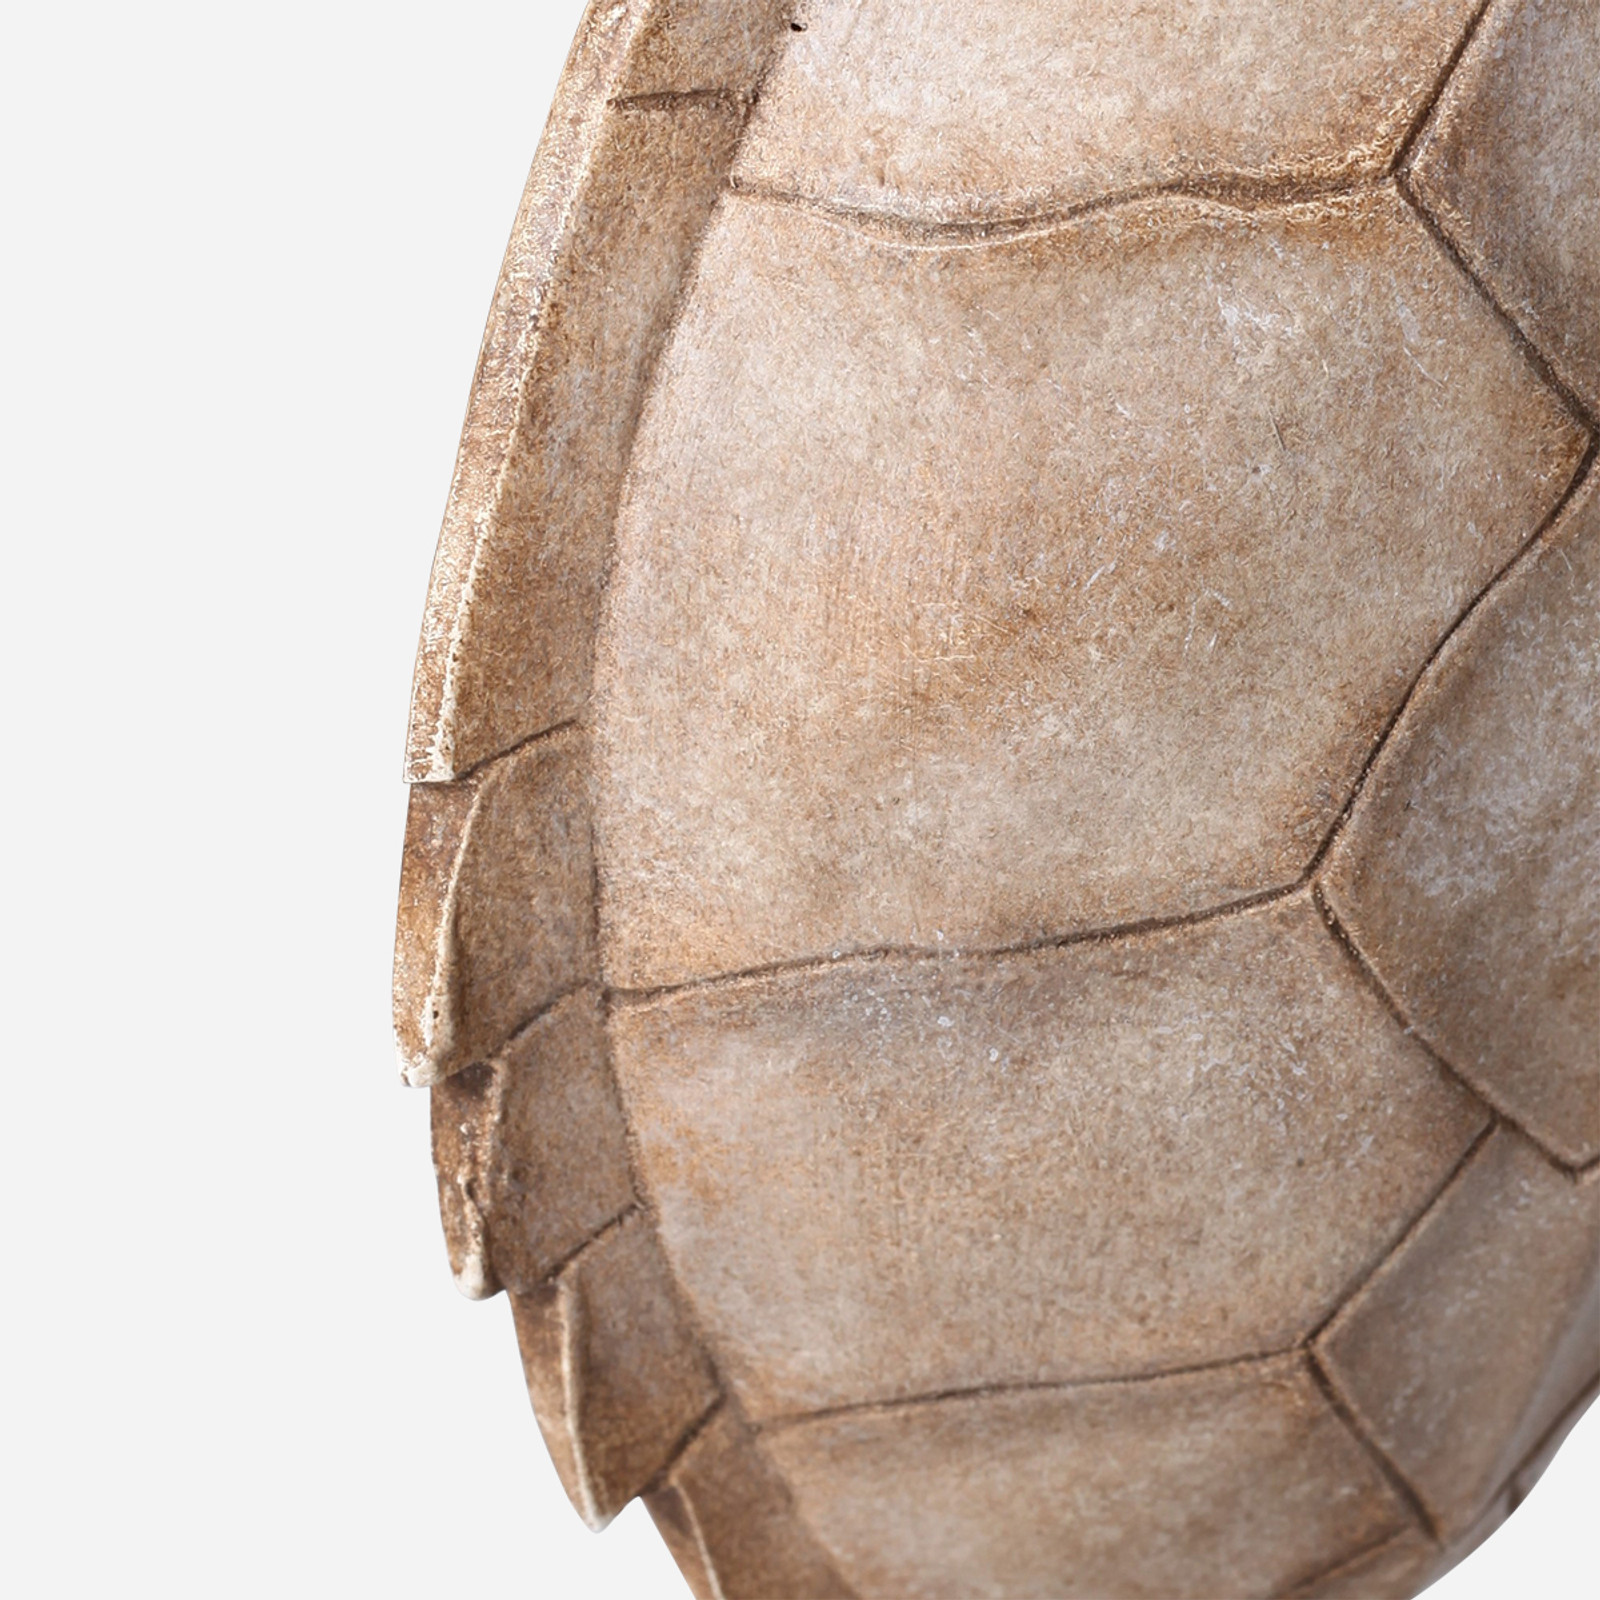 Faux Hawksbill Turtle Shell on Stand